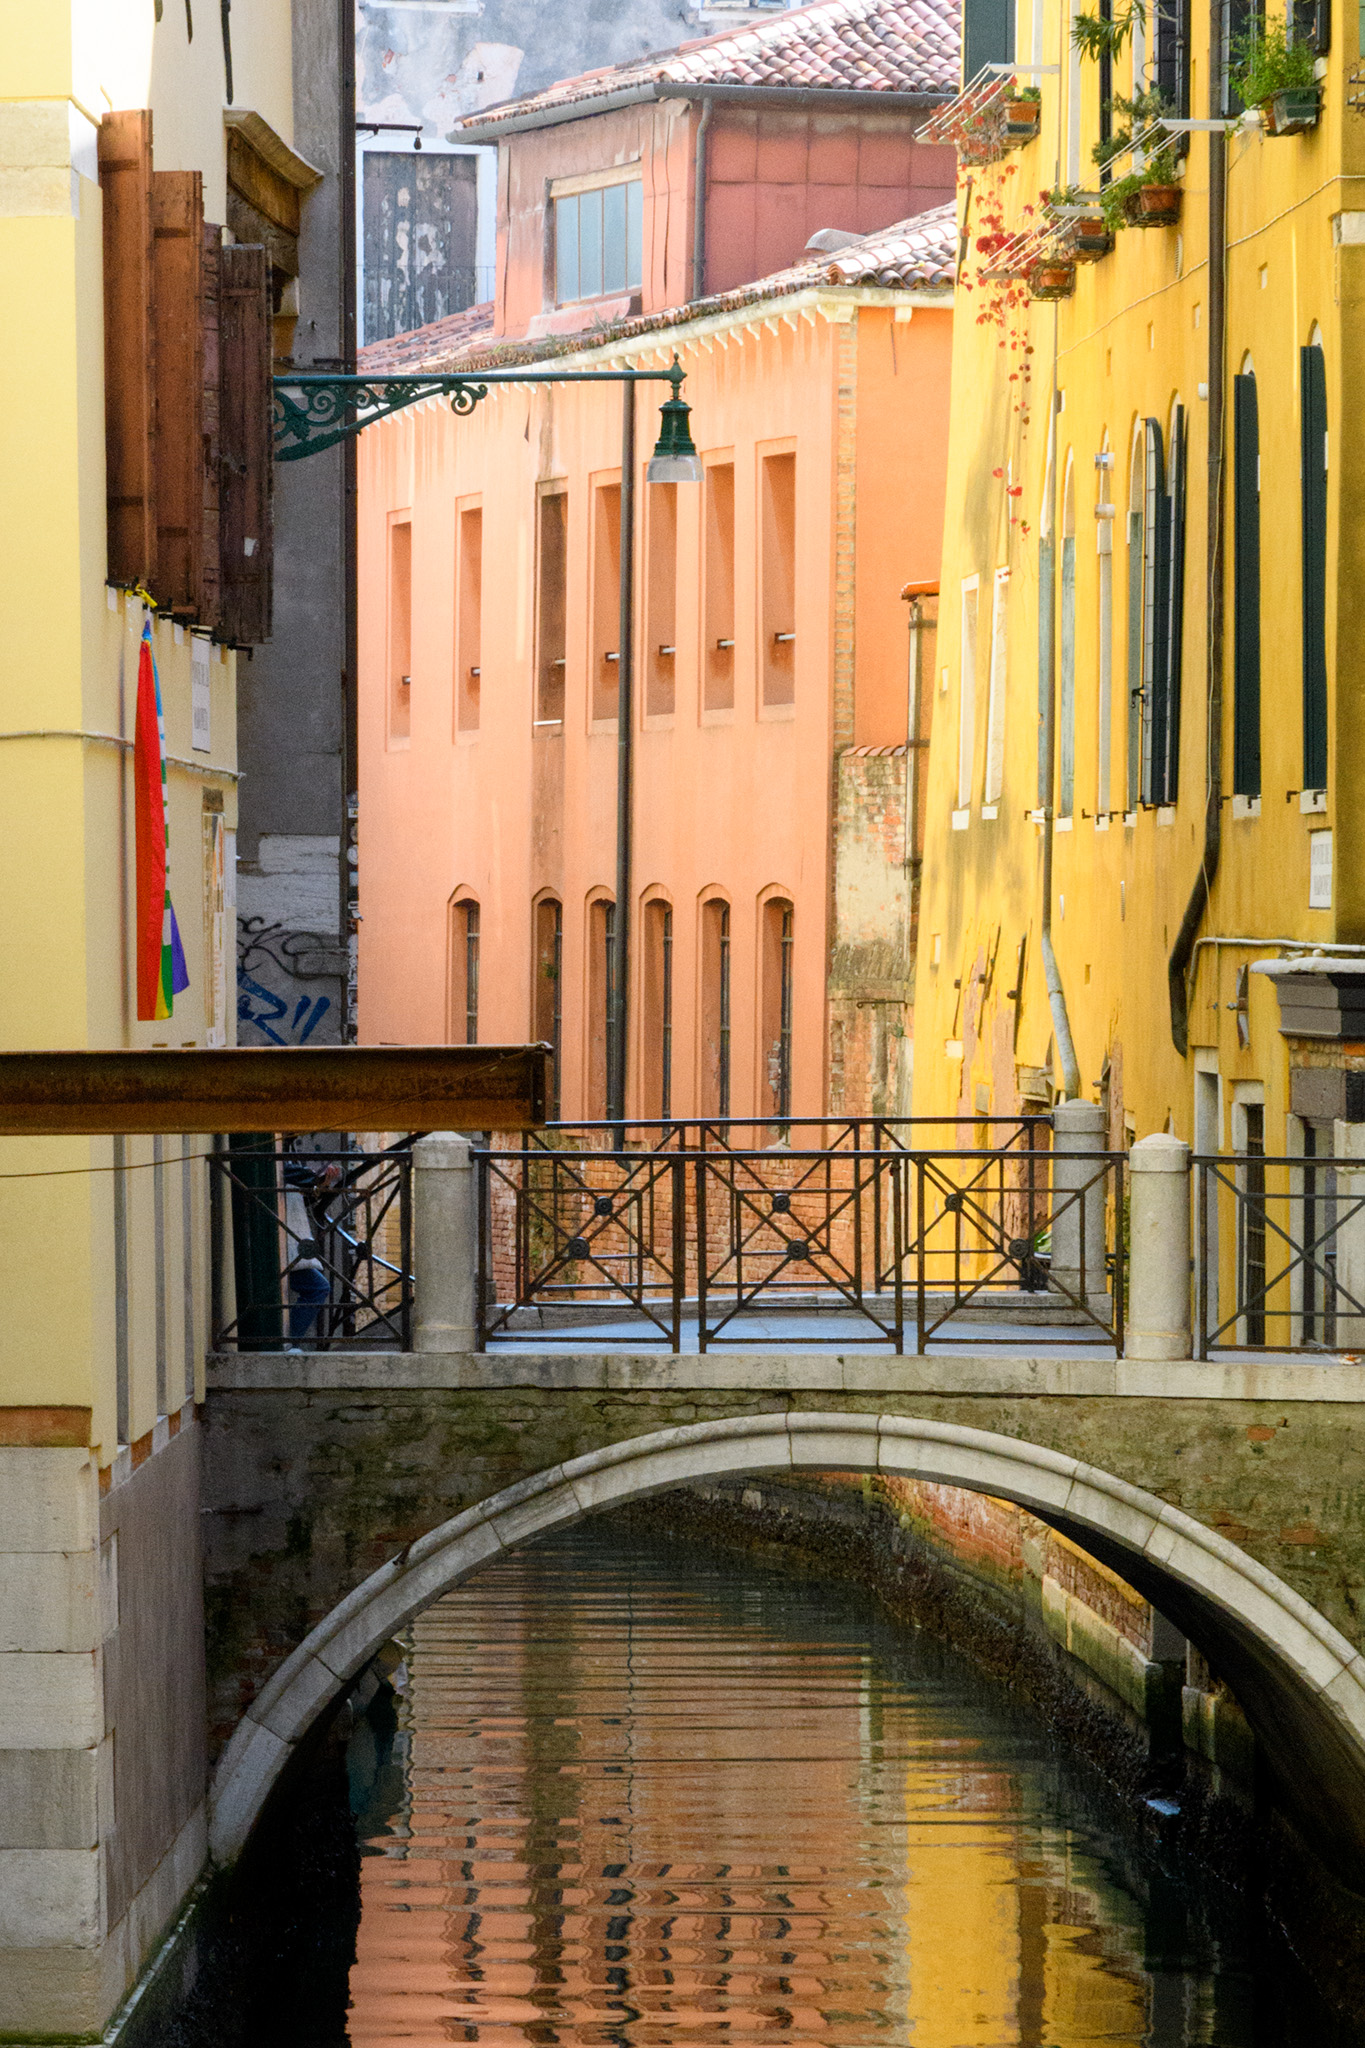 What makes Venice so atmospheric is that every turn reveals another beautiful view.